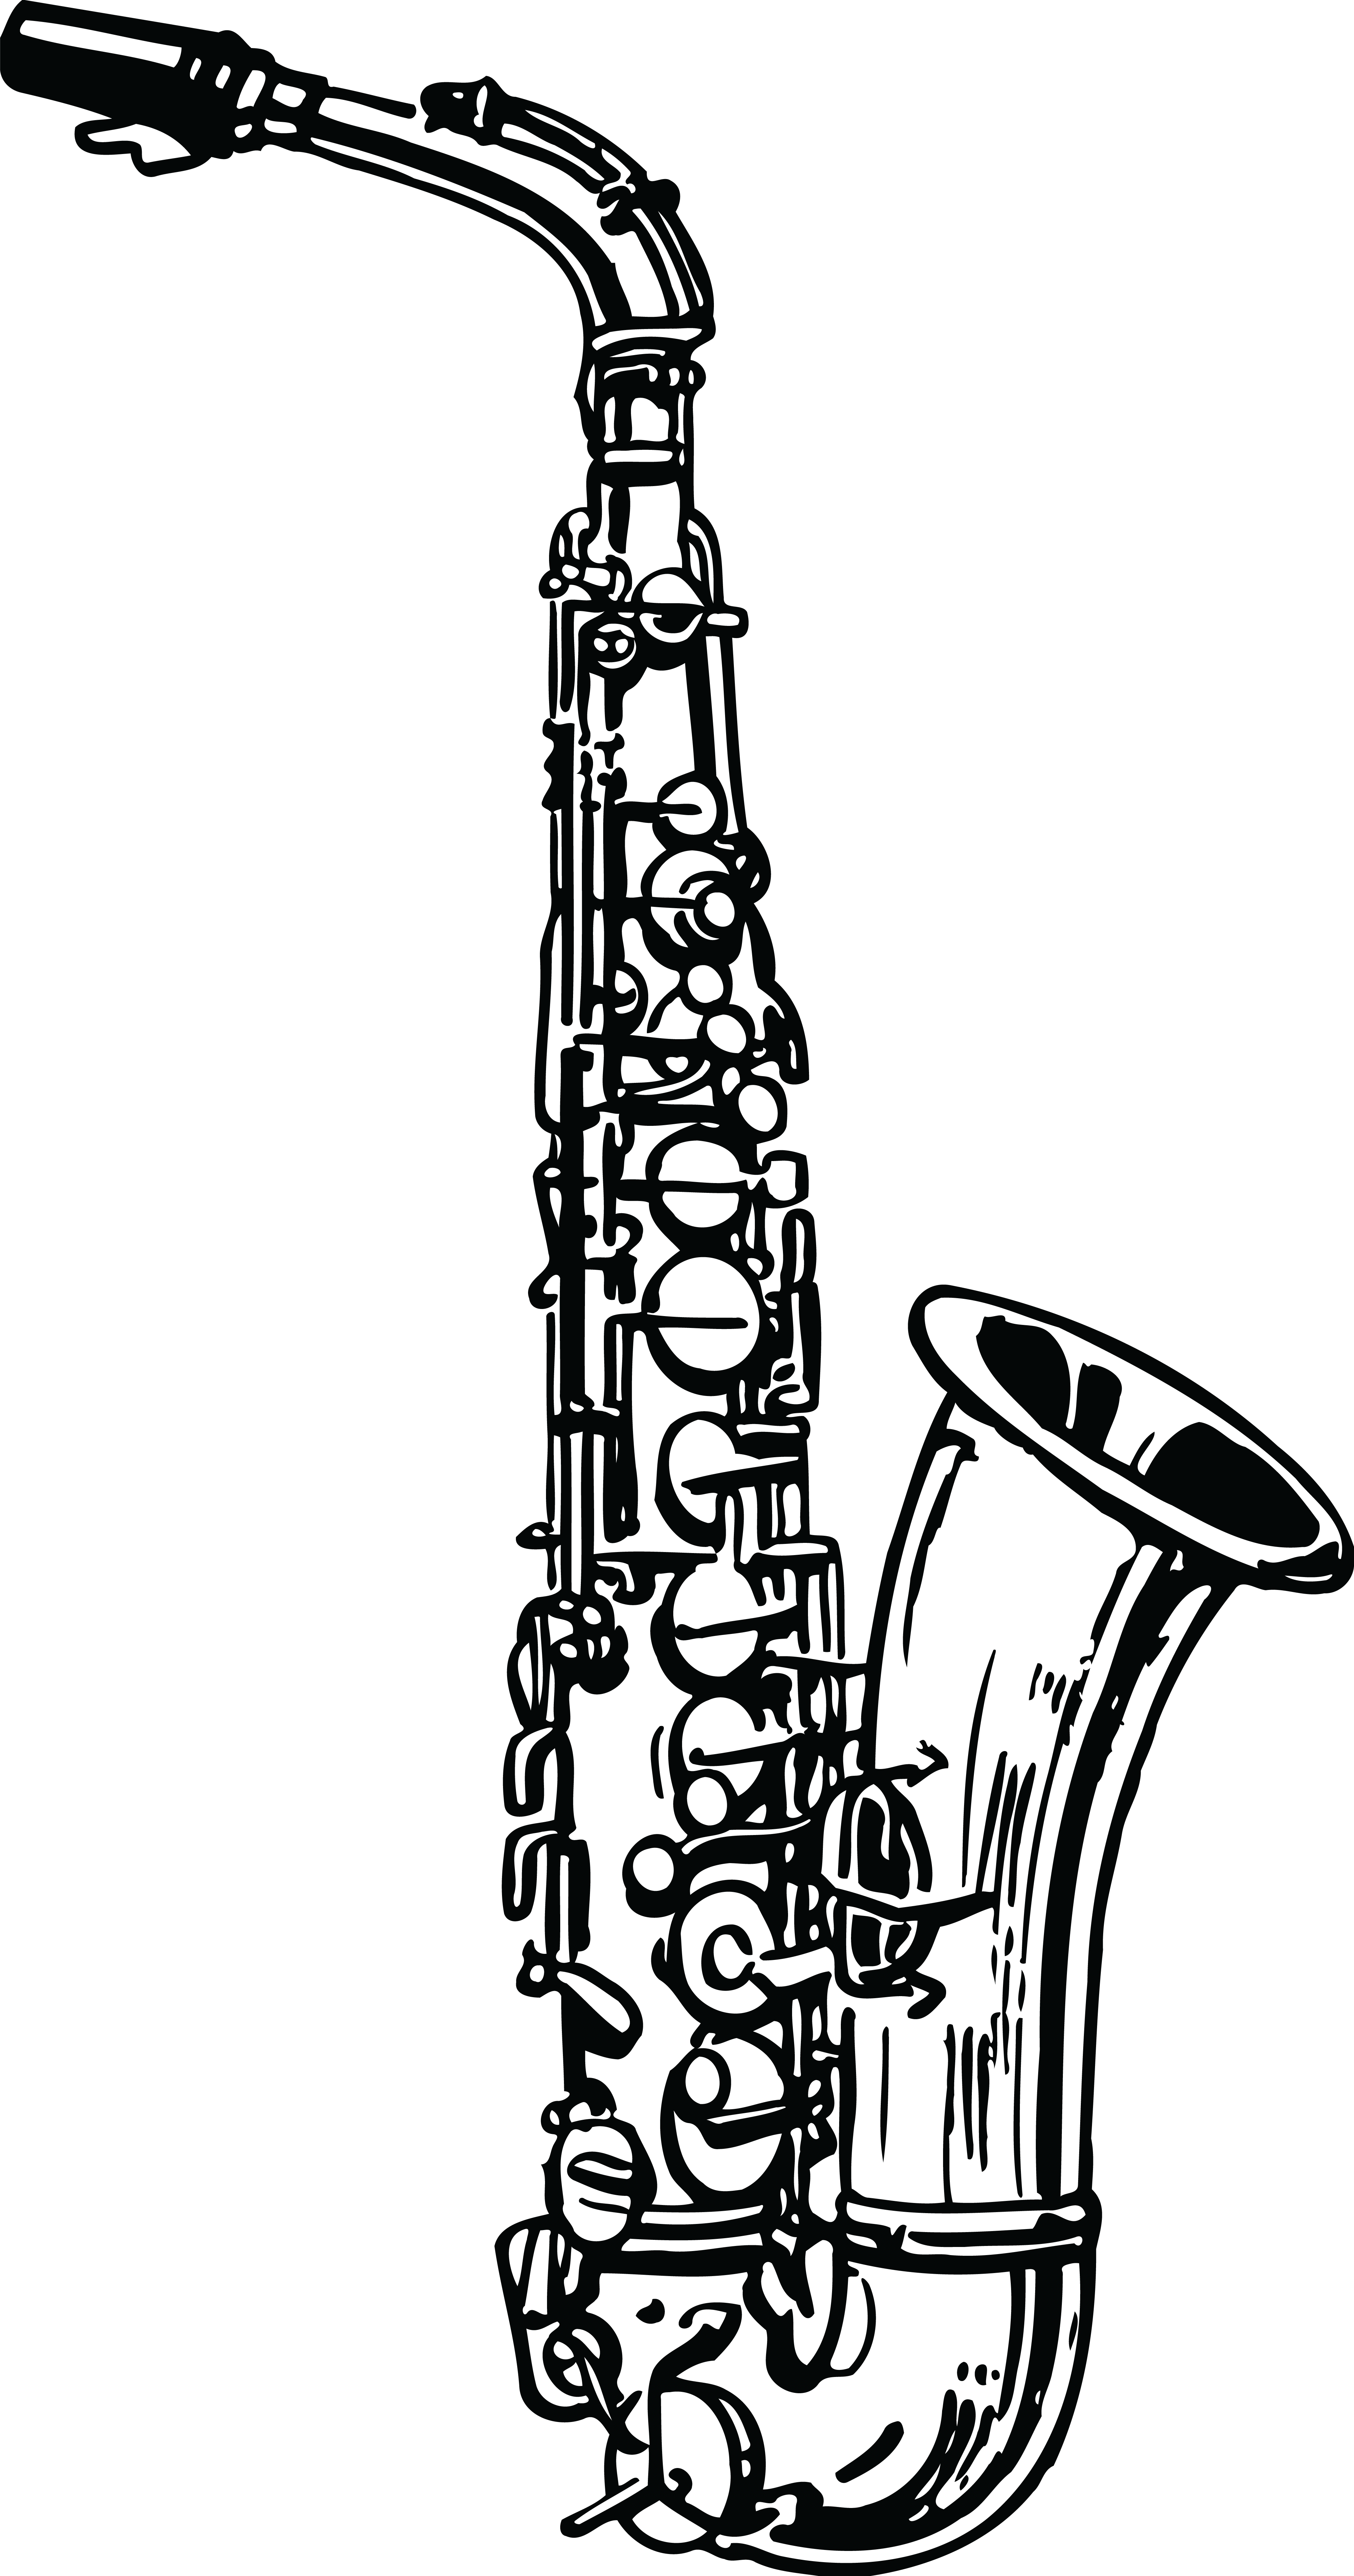 Oboe drawing black and white. Saxophone clarinet clip art